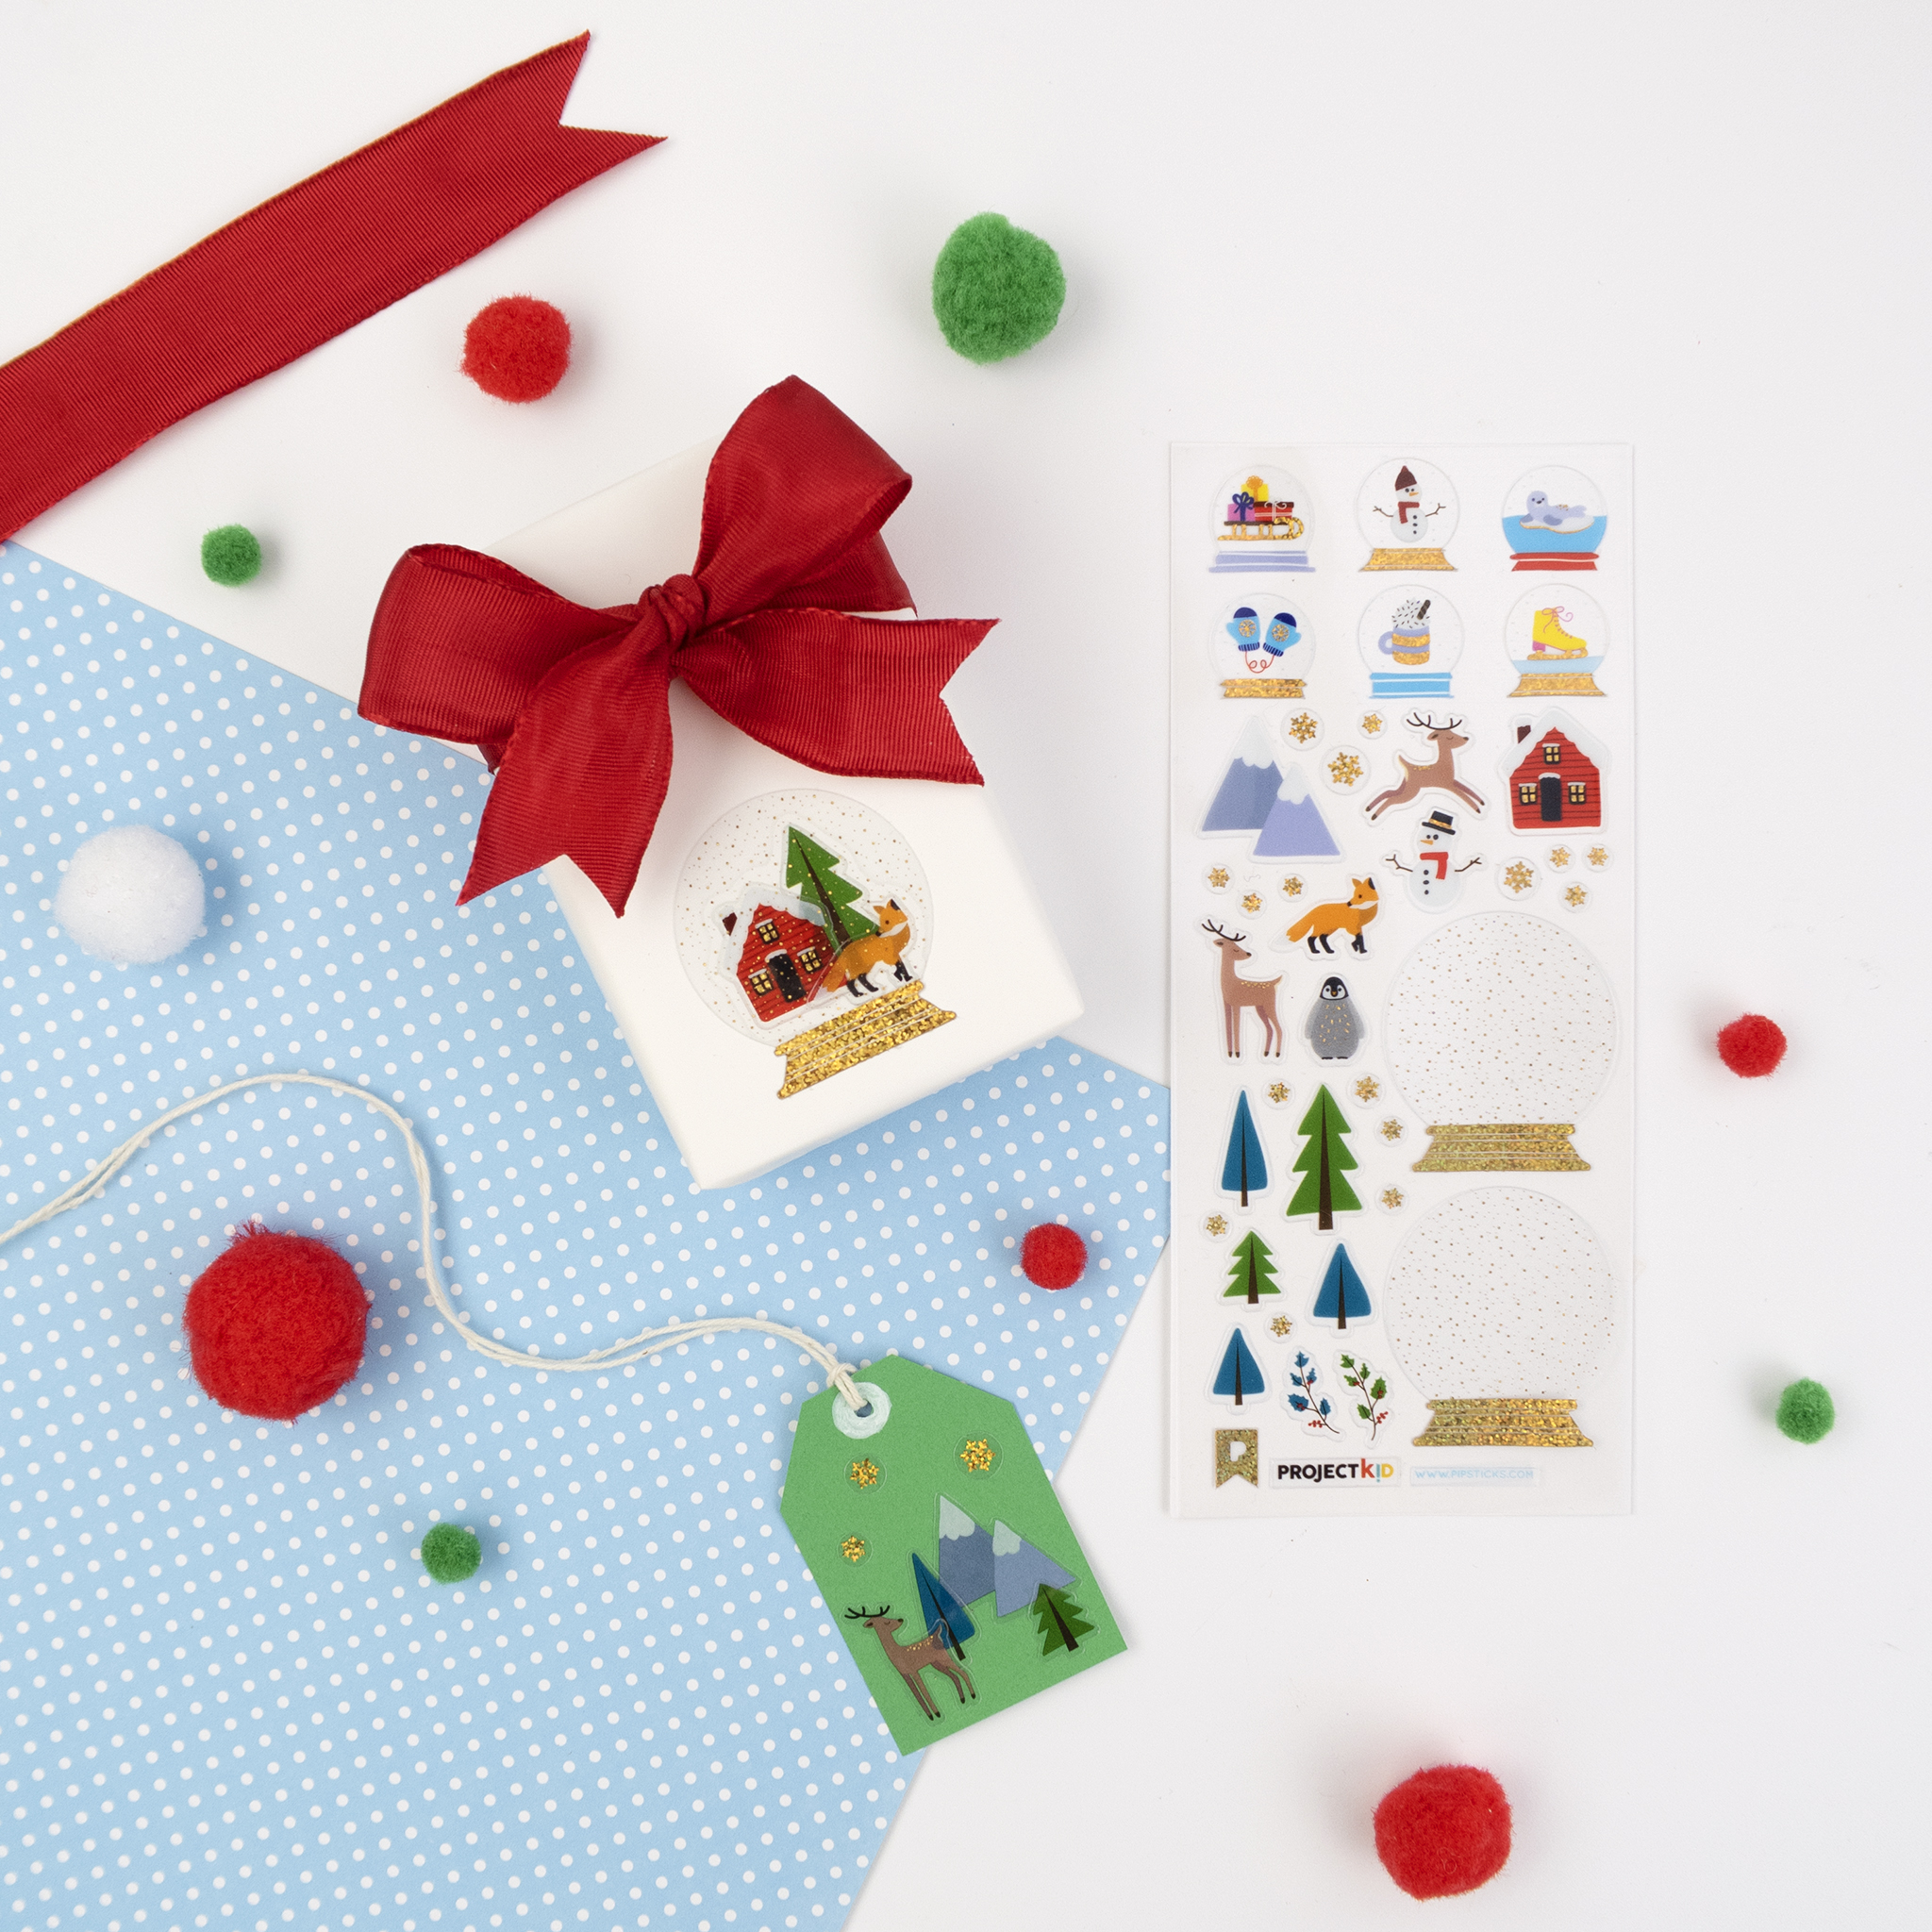 Project Kid gift tags